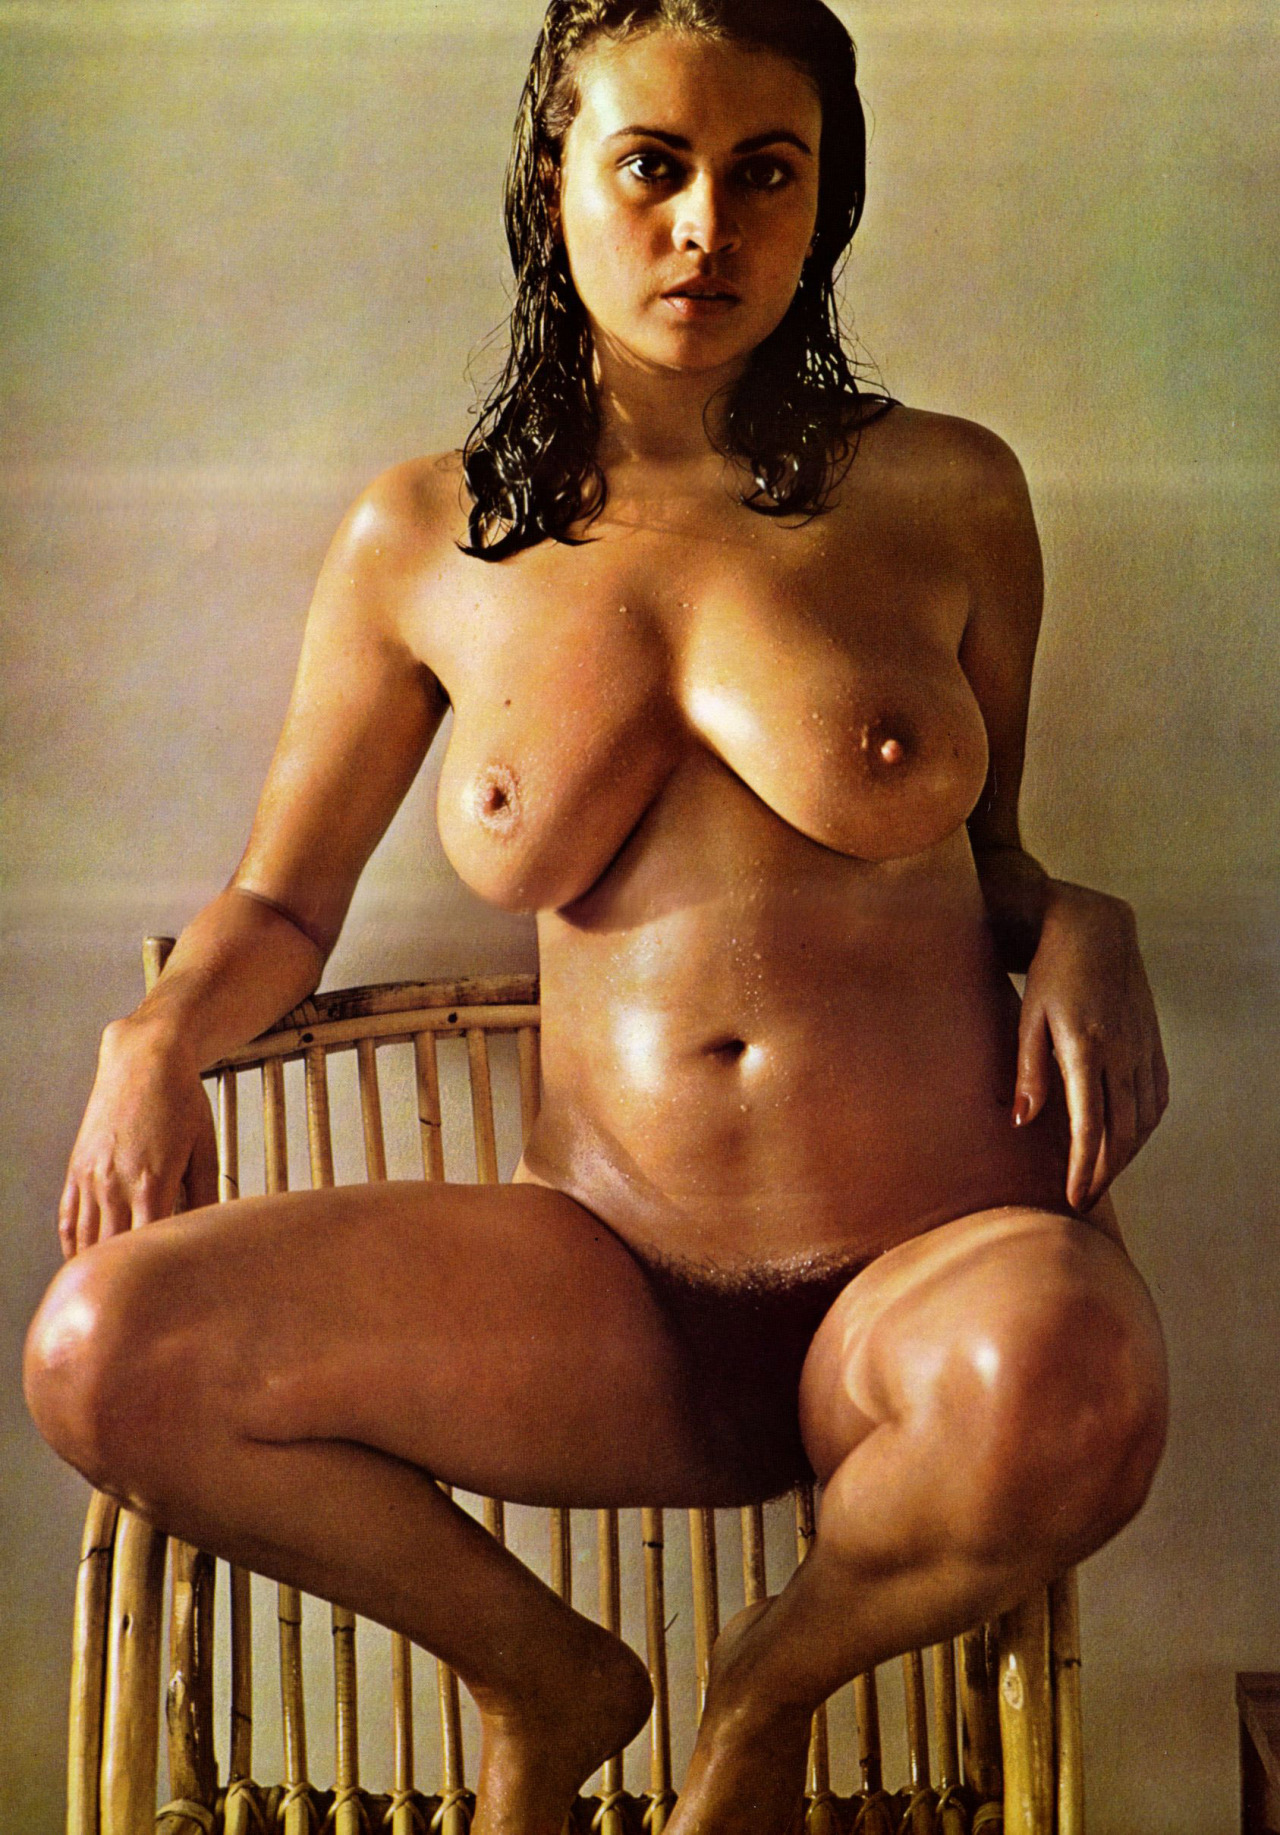 from Nasir only hot girls naked